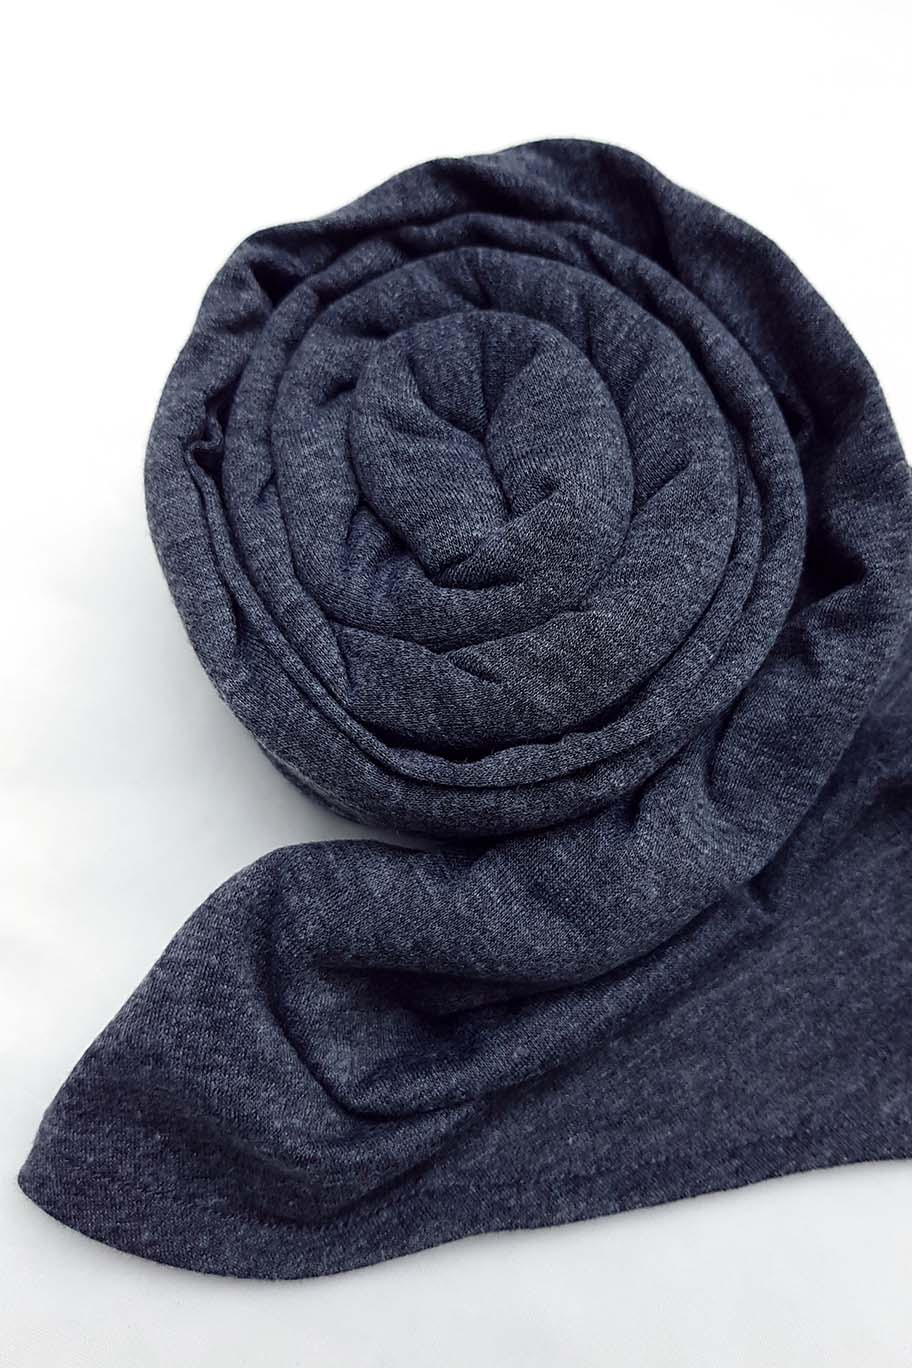 Dark Grey Jersey Hijab (Separate Inner Cap Included) - Jersey Hijab - The Modest Look